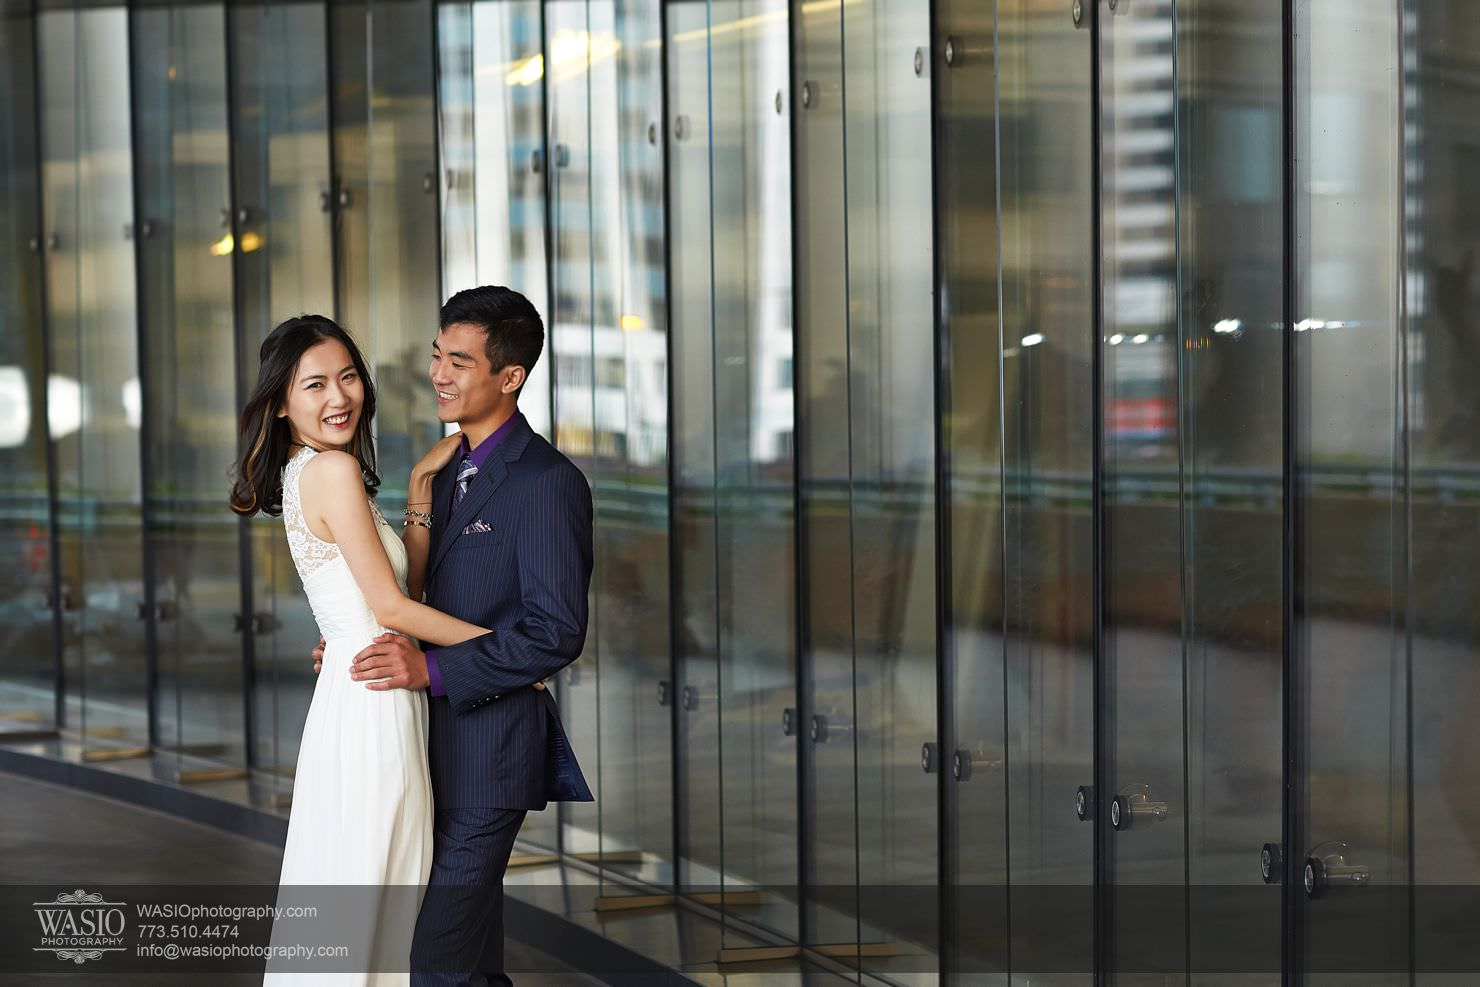 chicago-sunset-engagement-session-downtown-destination-001024 Chicago Sunset engagement - Yulin & Mika